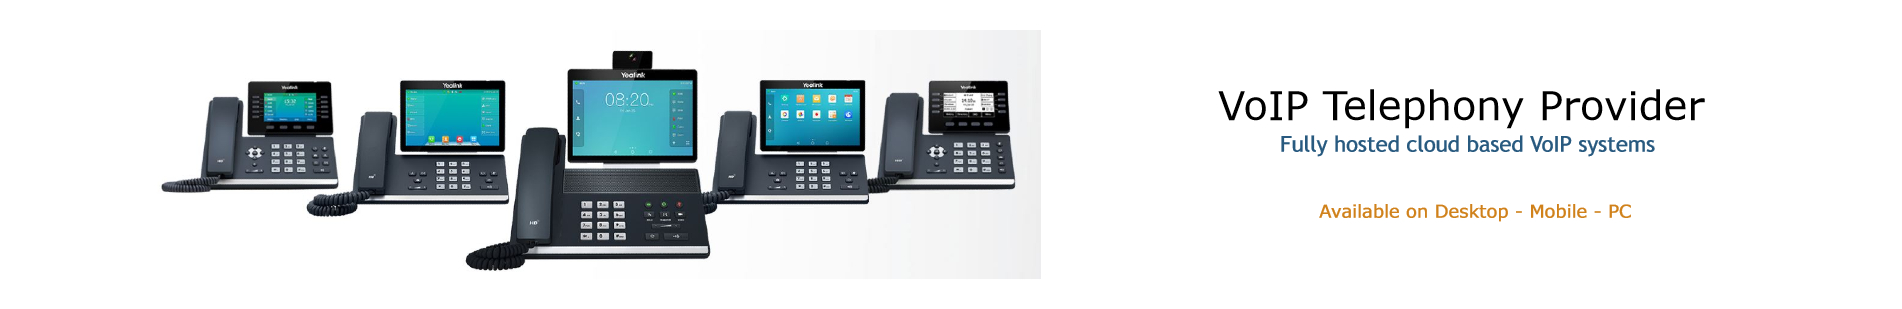 VoIP Telephony Provider